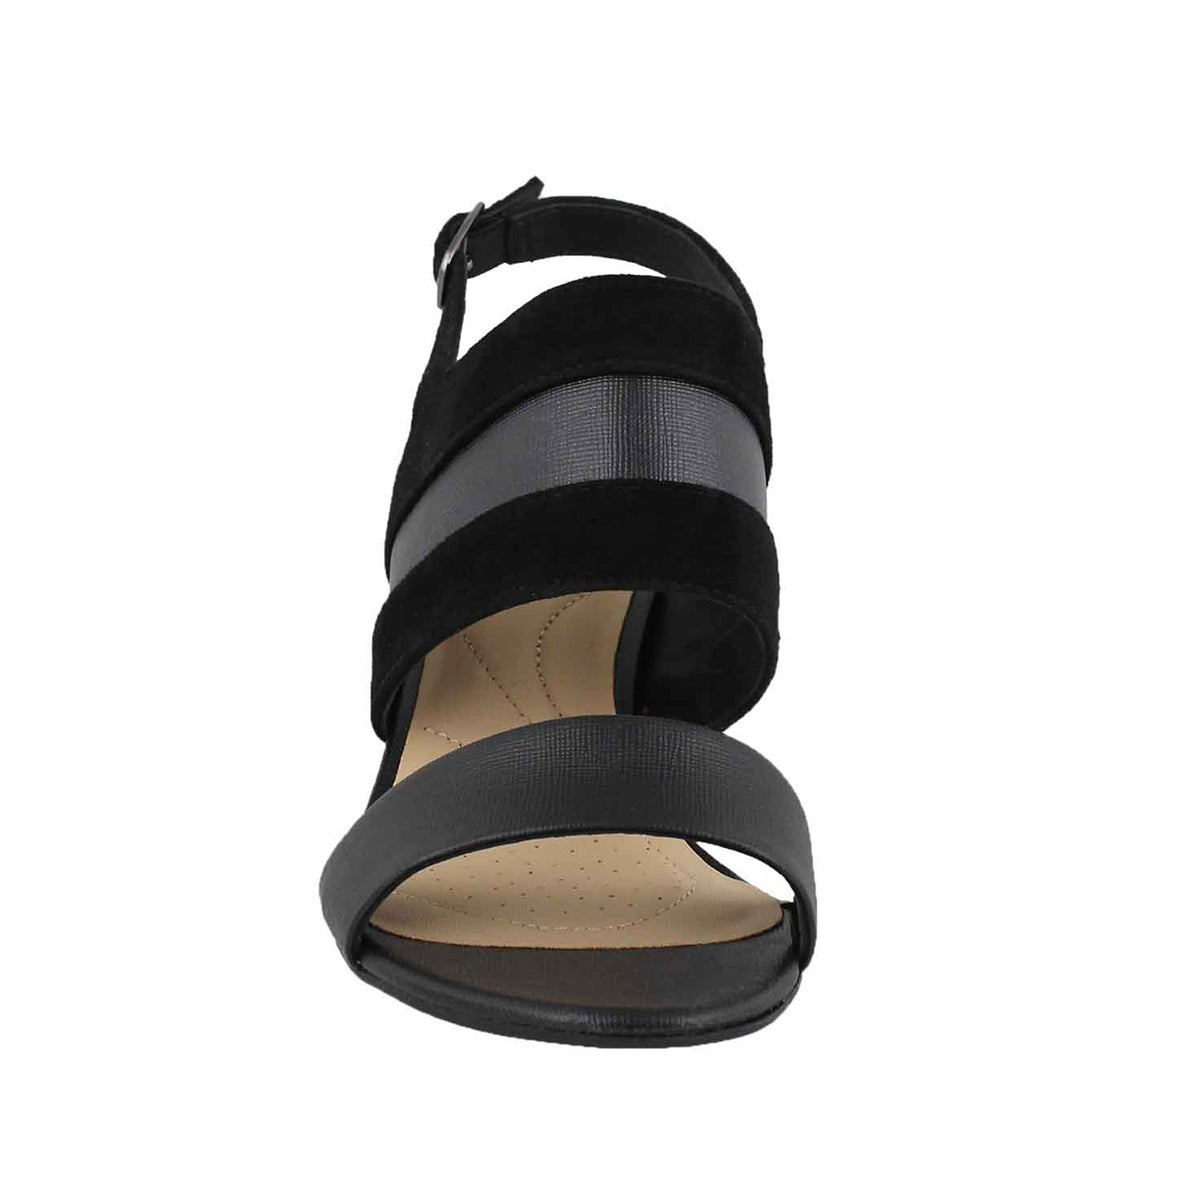 Lds Laureti Joy black dress sandal